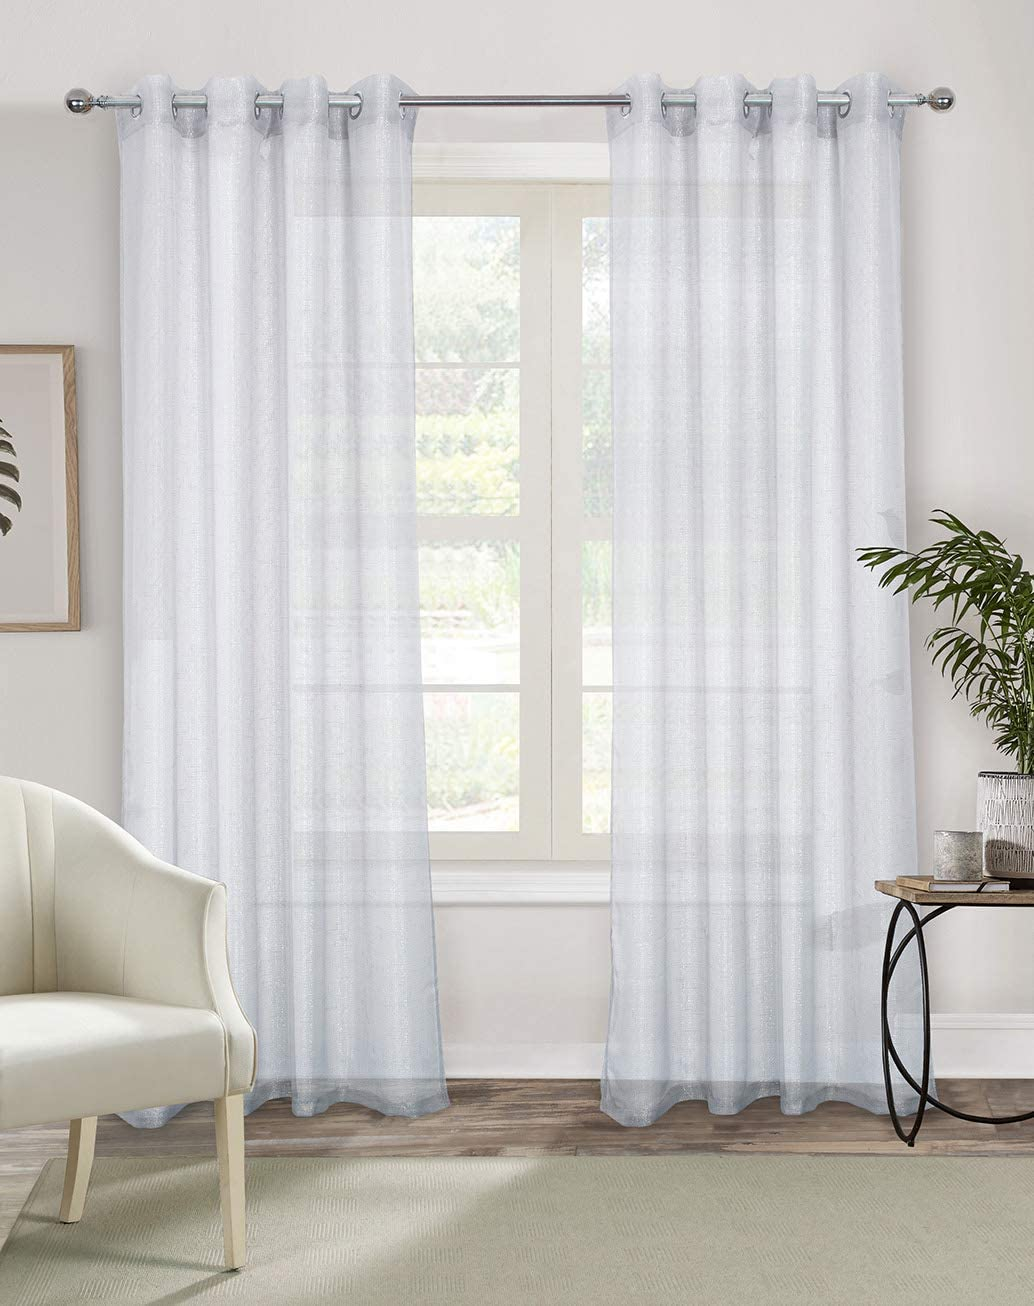 Alexandra Cole White Semi Sheer Curtains 84 Inches Long Light Filtering Curtains for Bedroom Voile Grommet Window Curtains Drapes for Living Room with Gold Wire 2 Panels